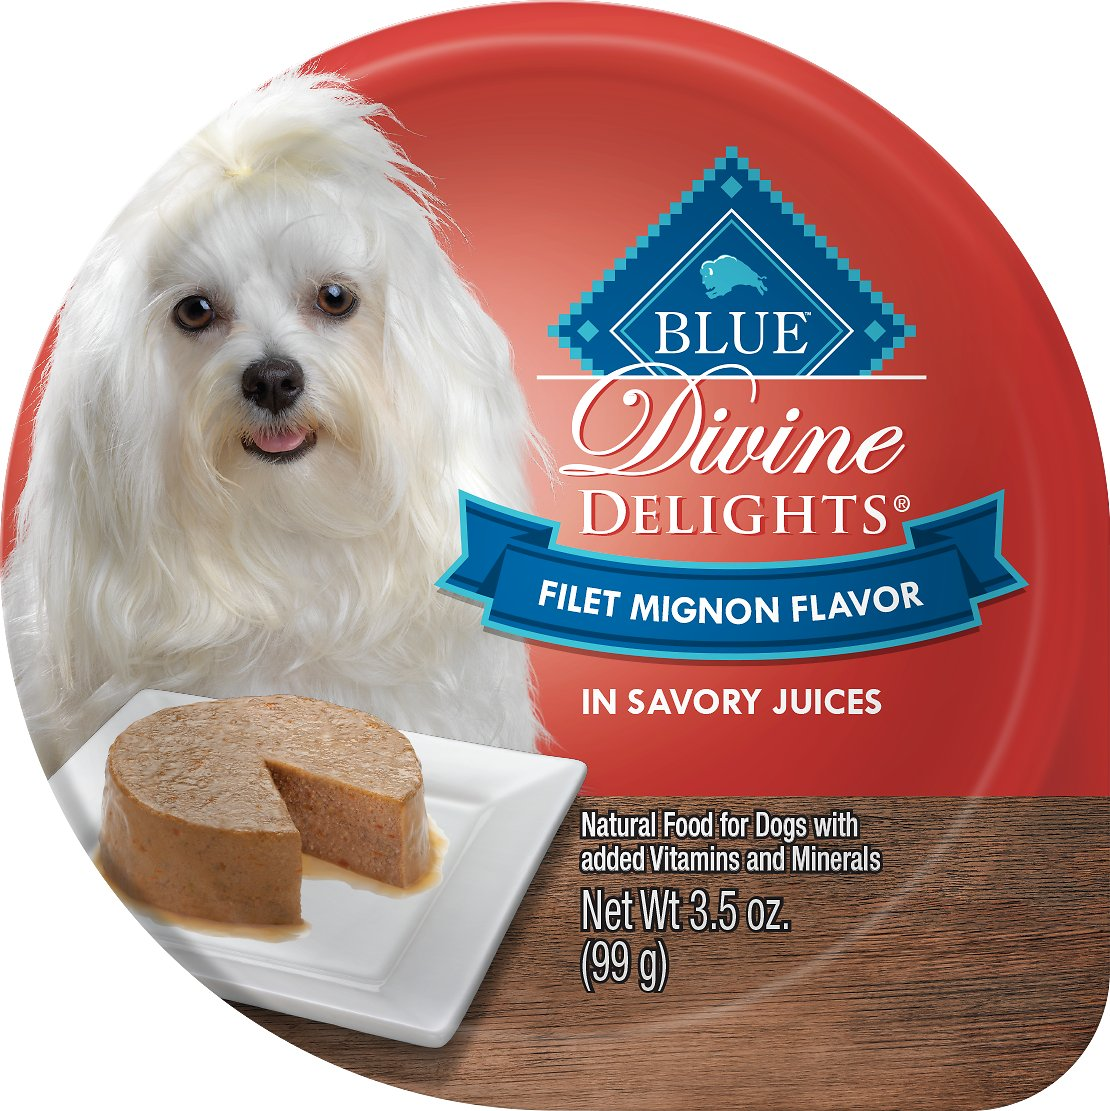 Blue Buffalo Divine Delights Filet Mignon Flavor Pate Dog Food Trays Image